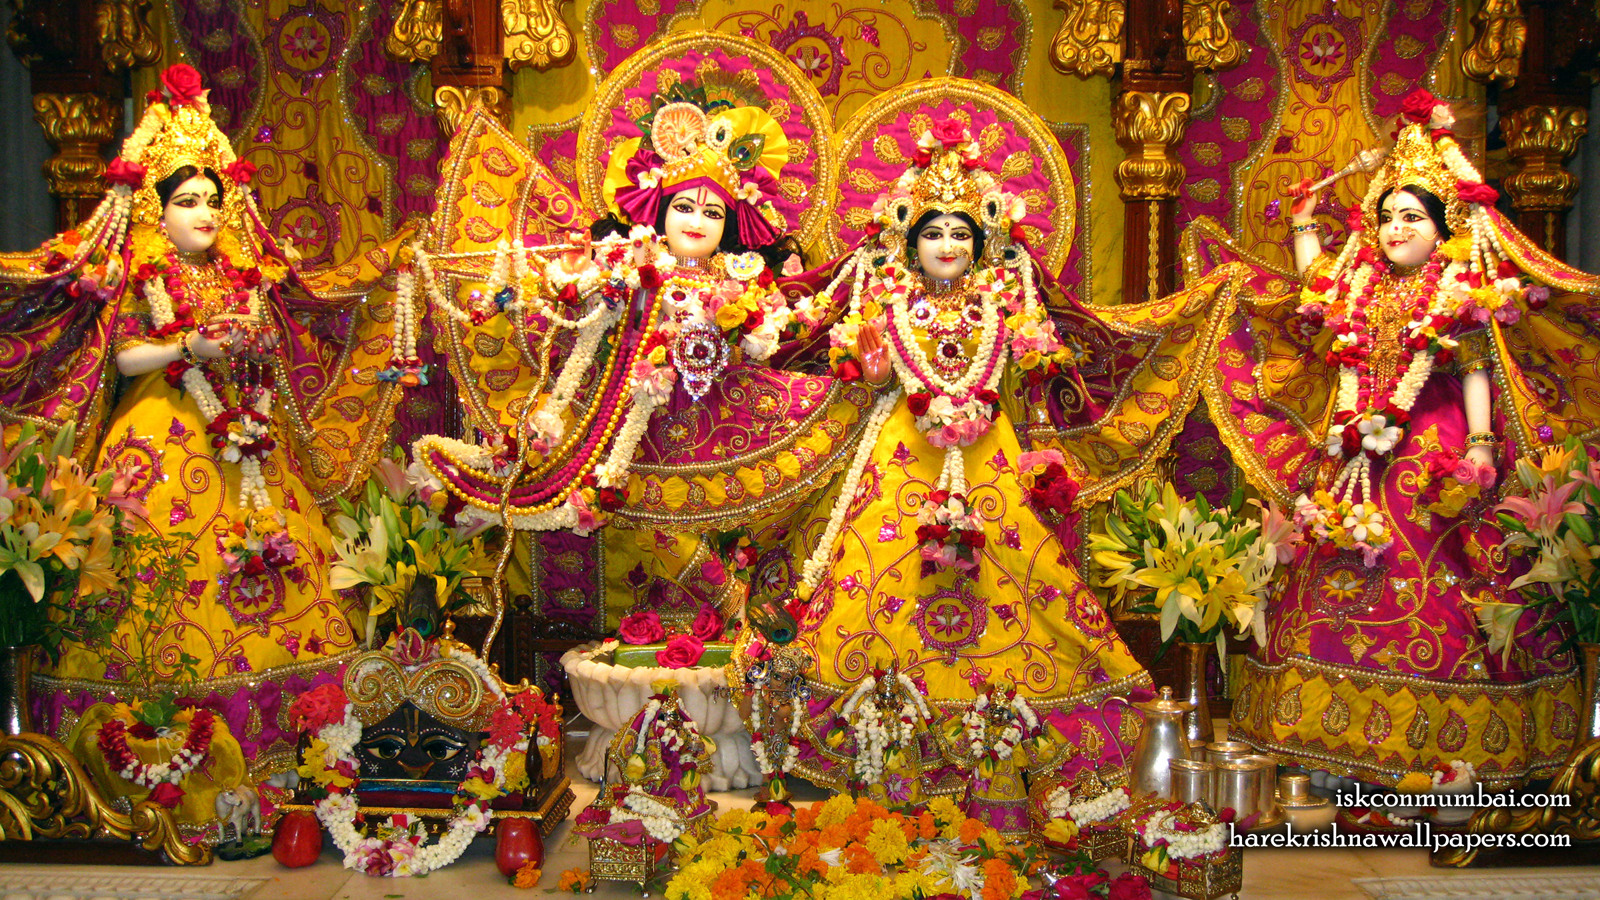 Sri Sri Radha Rasabihari Lalita Vishakha Wallpaper (004) Size 1600x900 Download